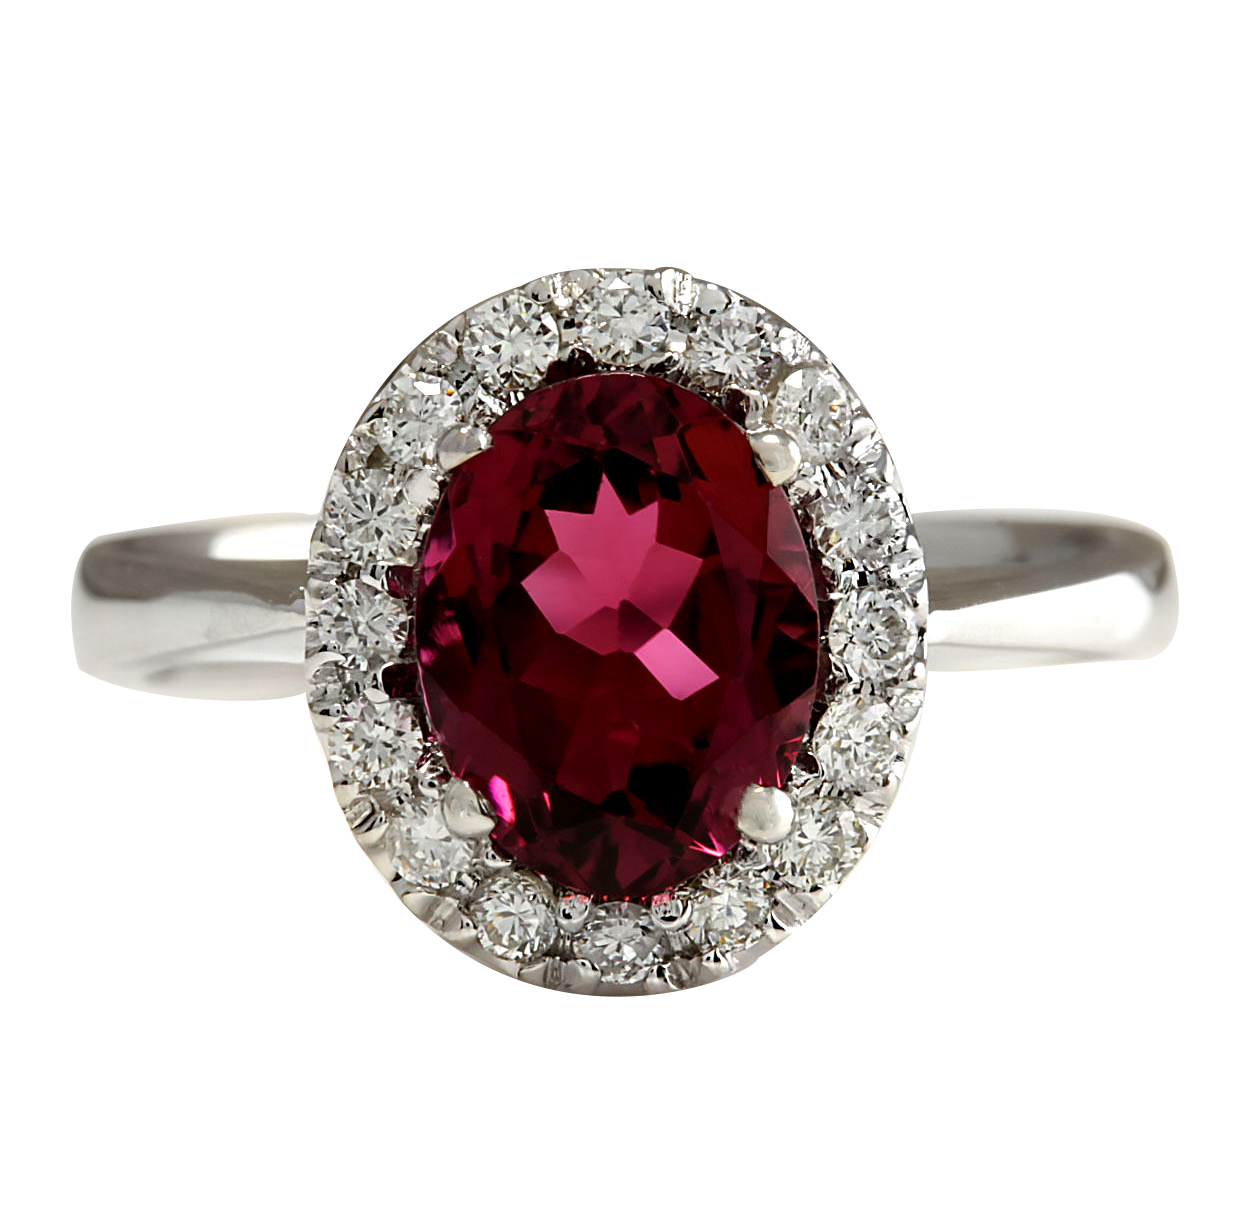 2.35CTW Natural Pink Tourmaline And Diamond Ring 14K Solid White Gold by